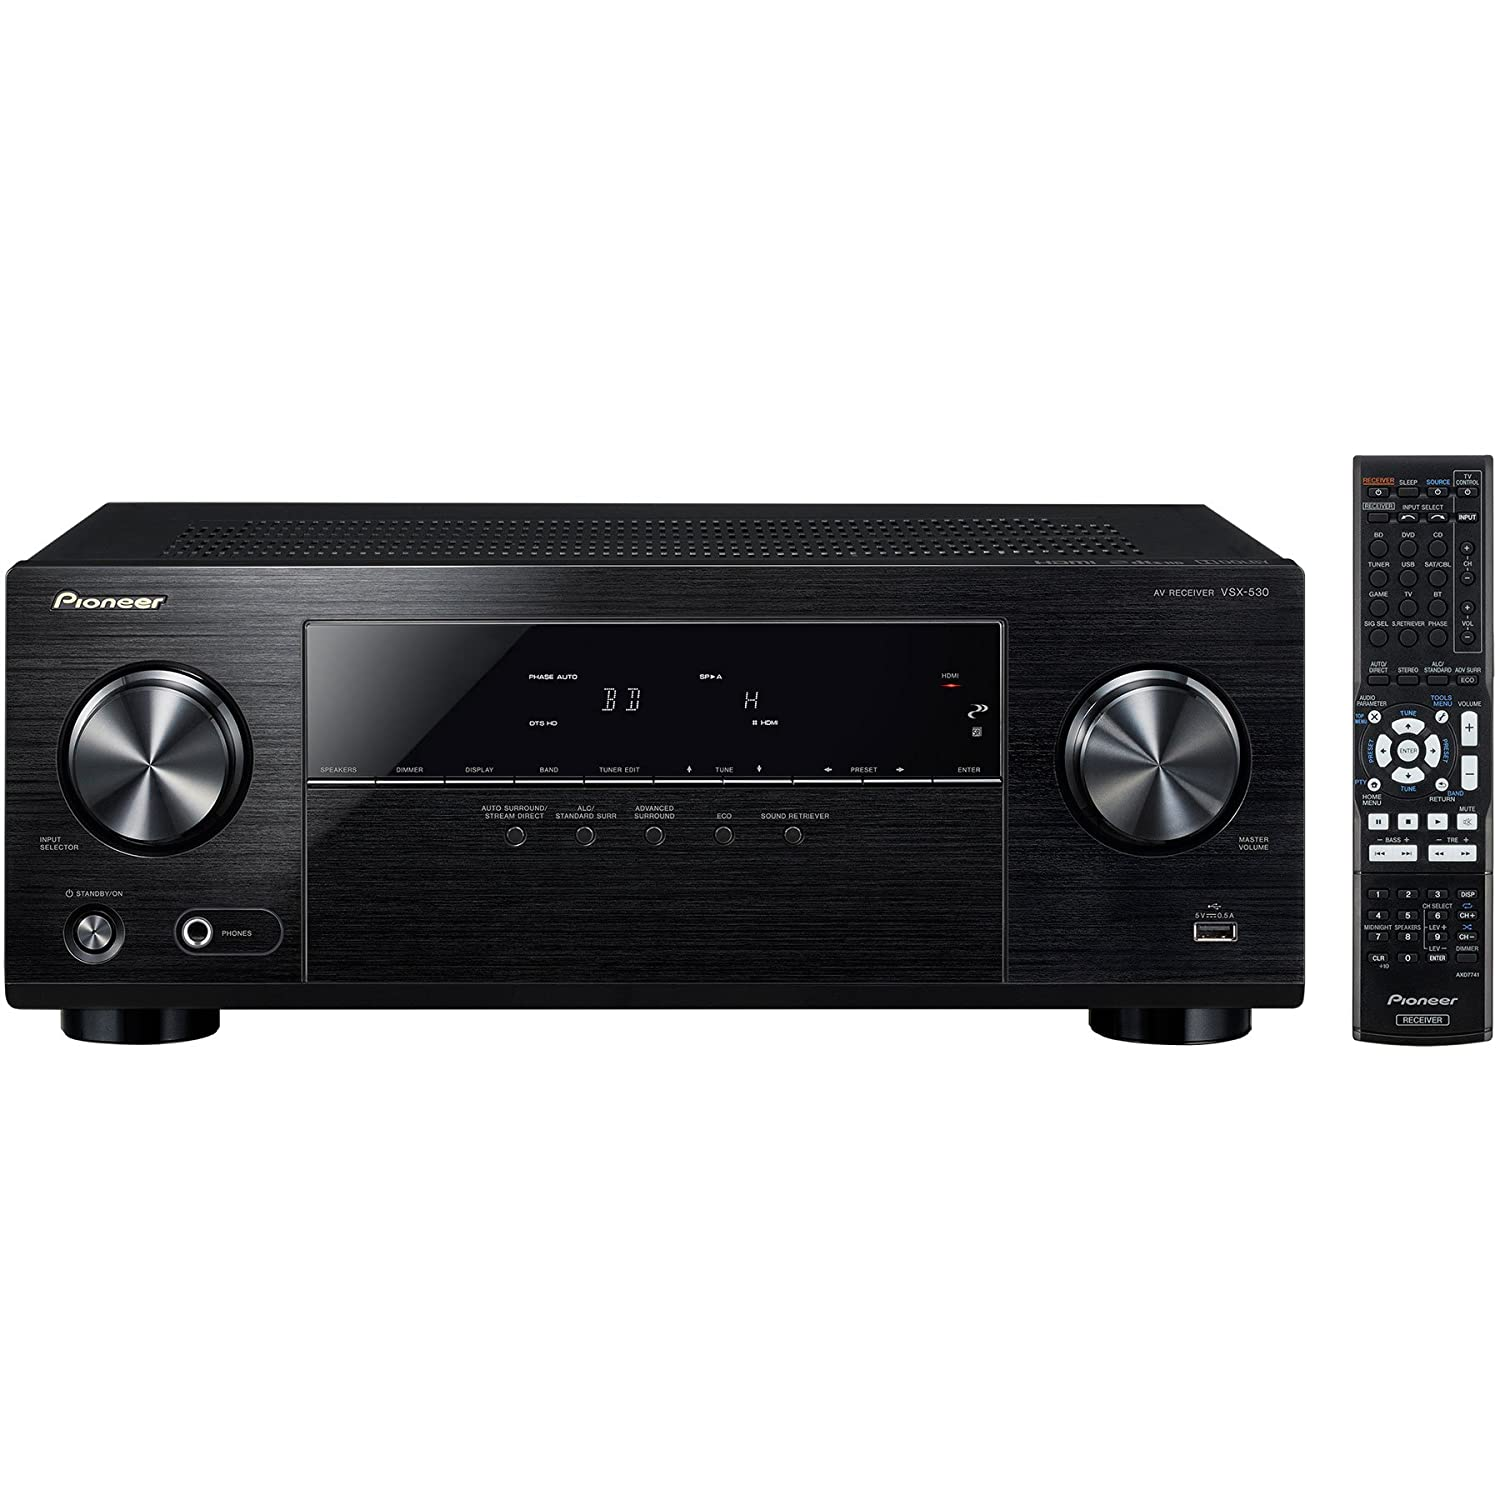 Pioneer VSX-530-K 5.1 Channel AV Receiver with Dolby True HD & Built-In Bluetooth Wireless Technology